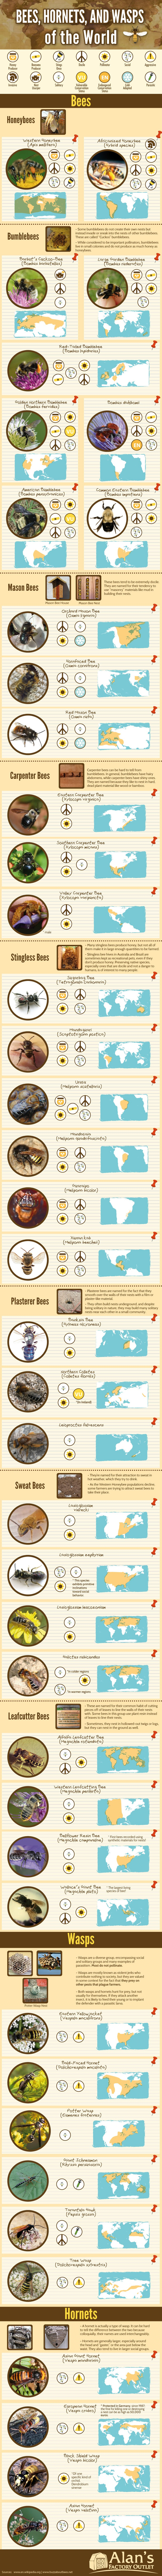 Bees, Hornets and Wasps of the World